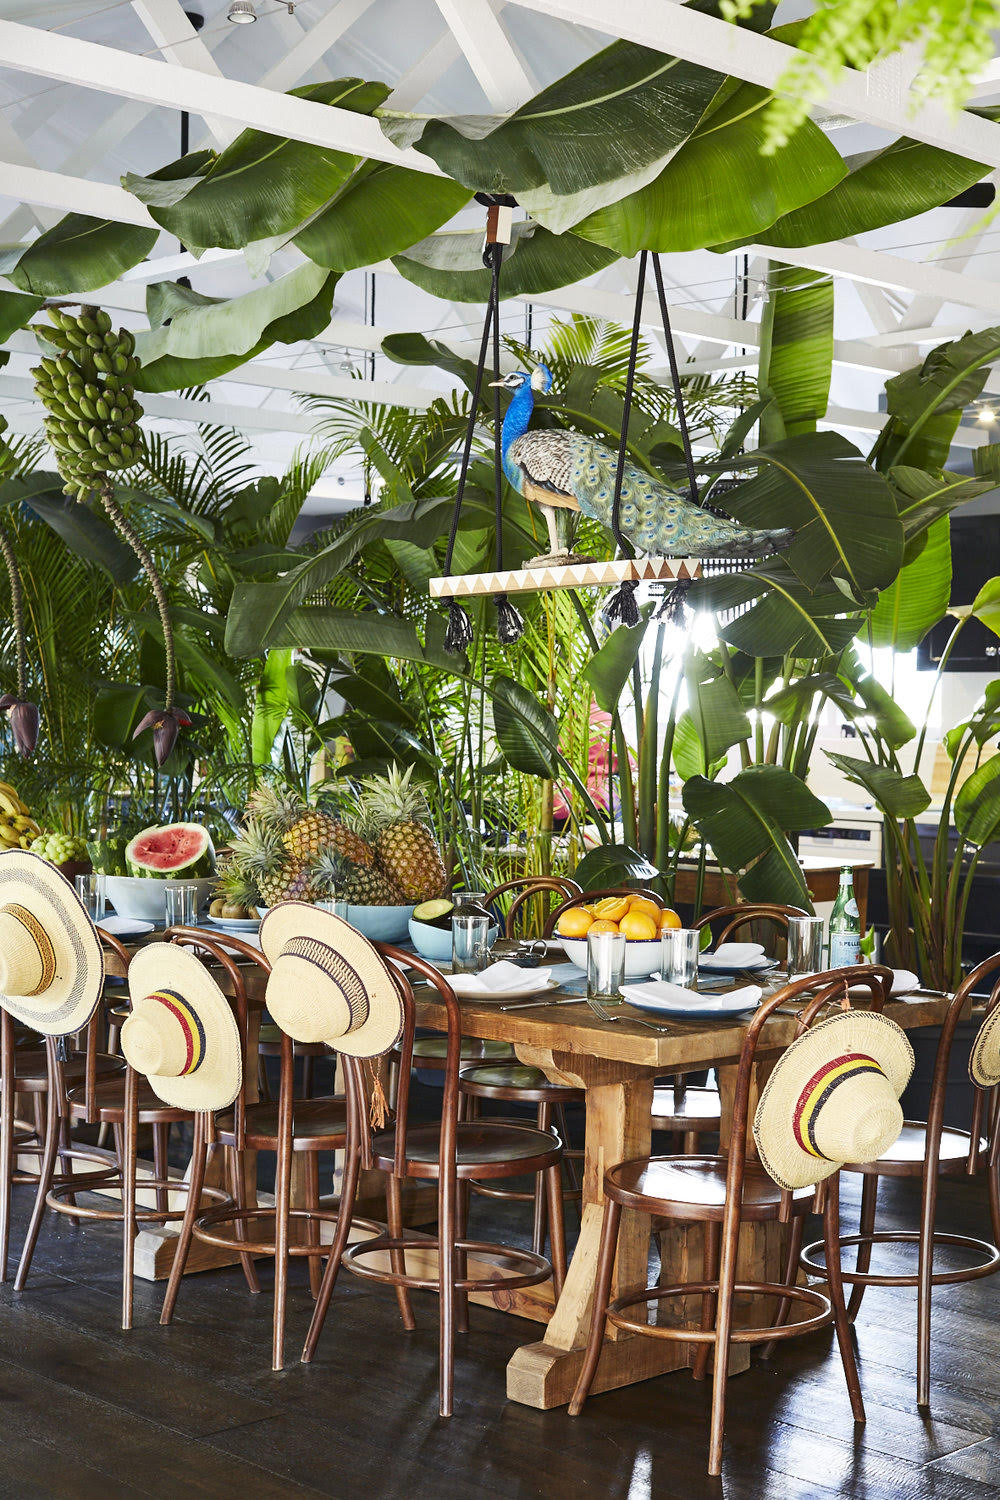 Designer Duo Alida and Miller create an indoor tropical dining oasis.